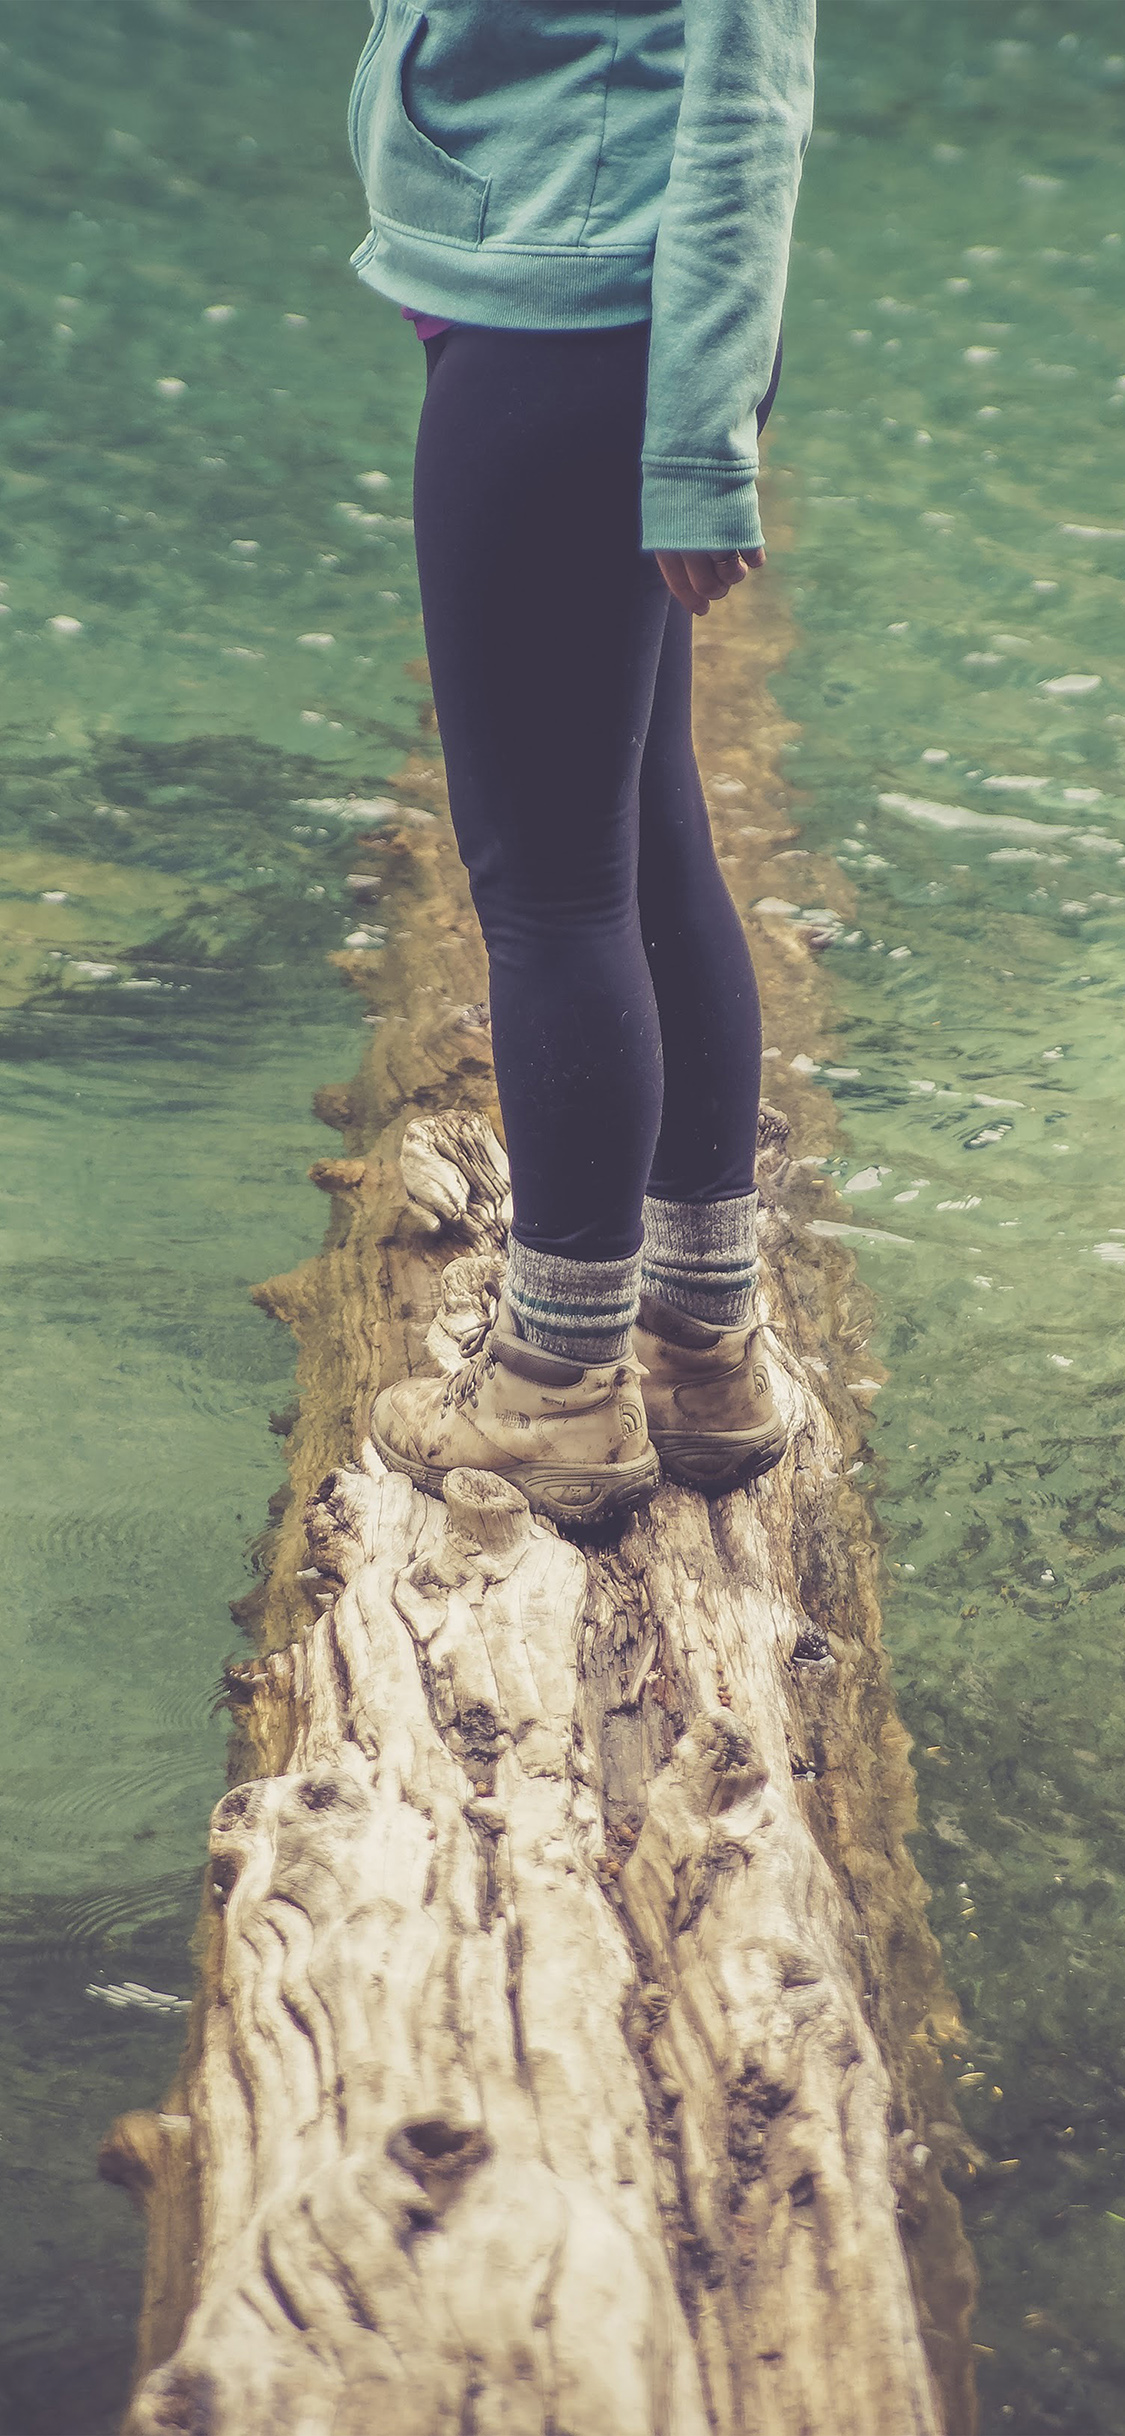 iPhoneXpapers.com-Apple-iPhone-wallpaper-nf58-girlfriend-lake-green-nature-water-cold